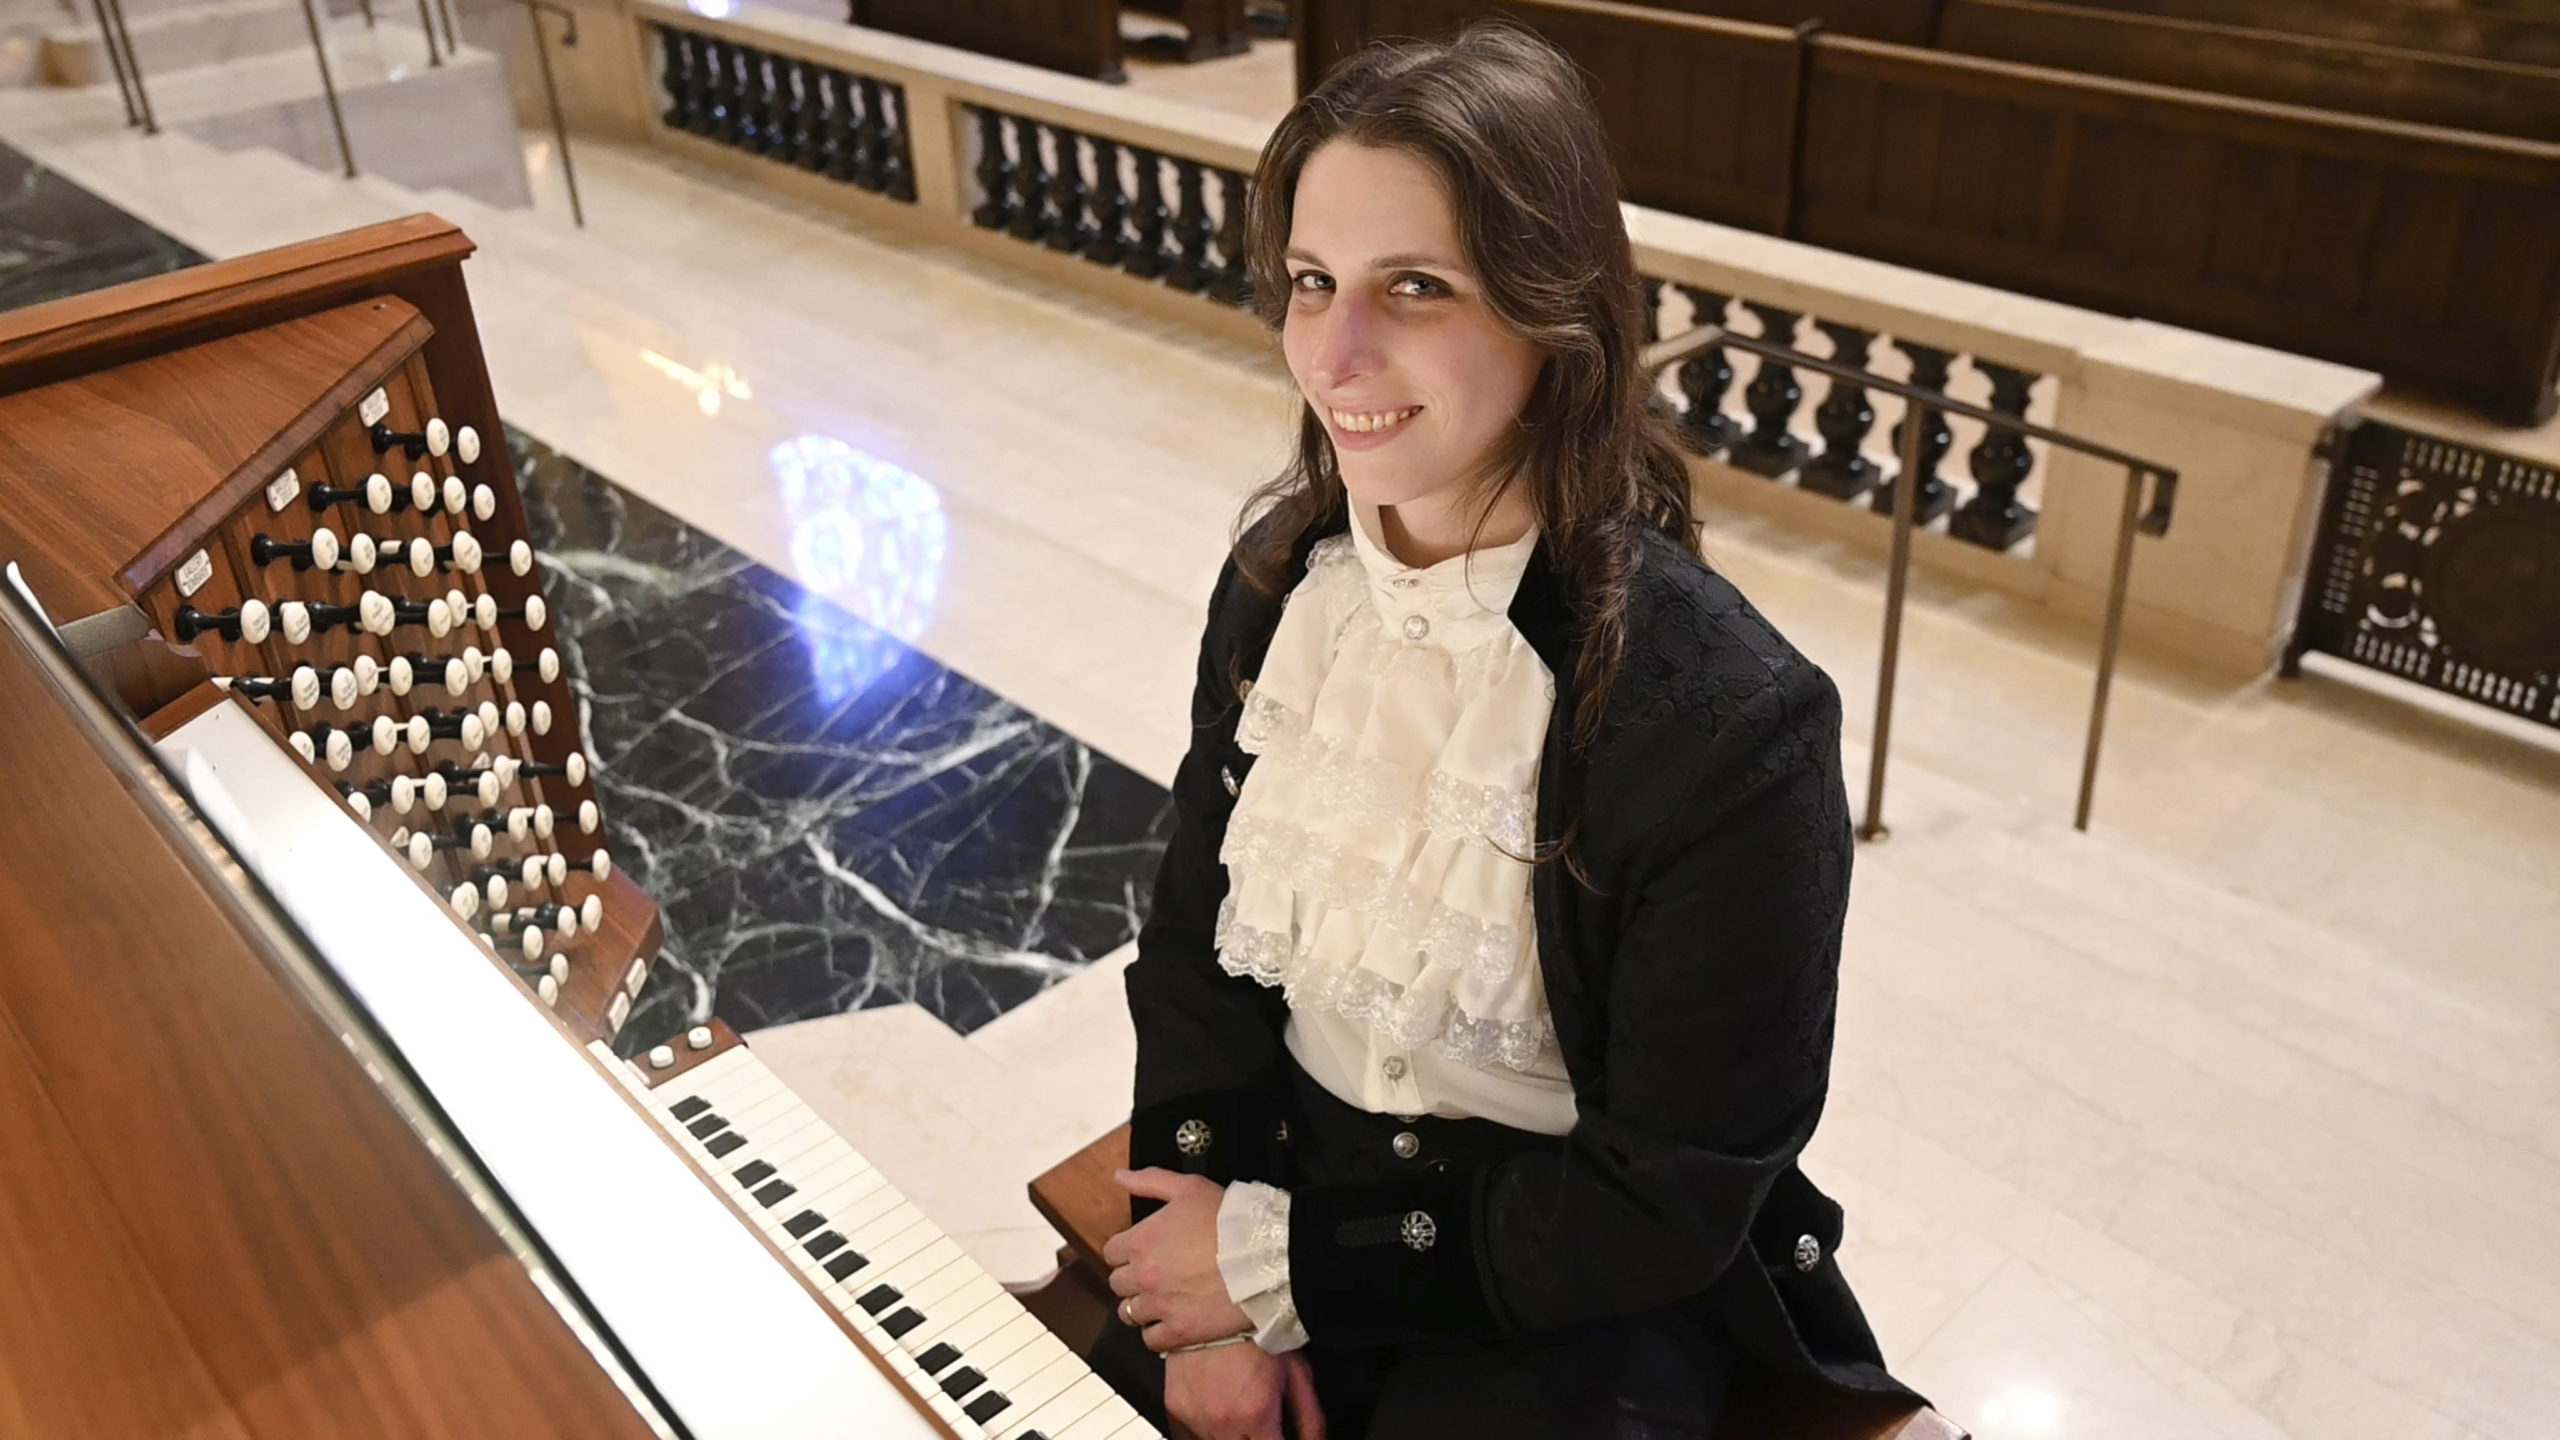 Dr. Kris Rizzotto at the organ transgender organist composer pianist